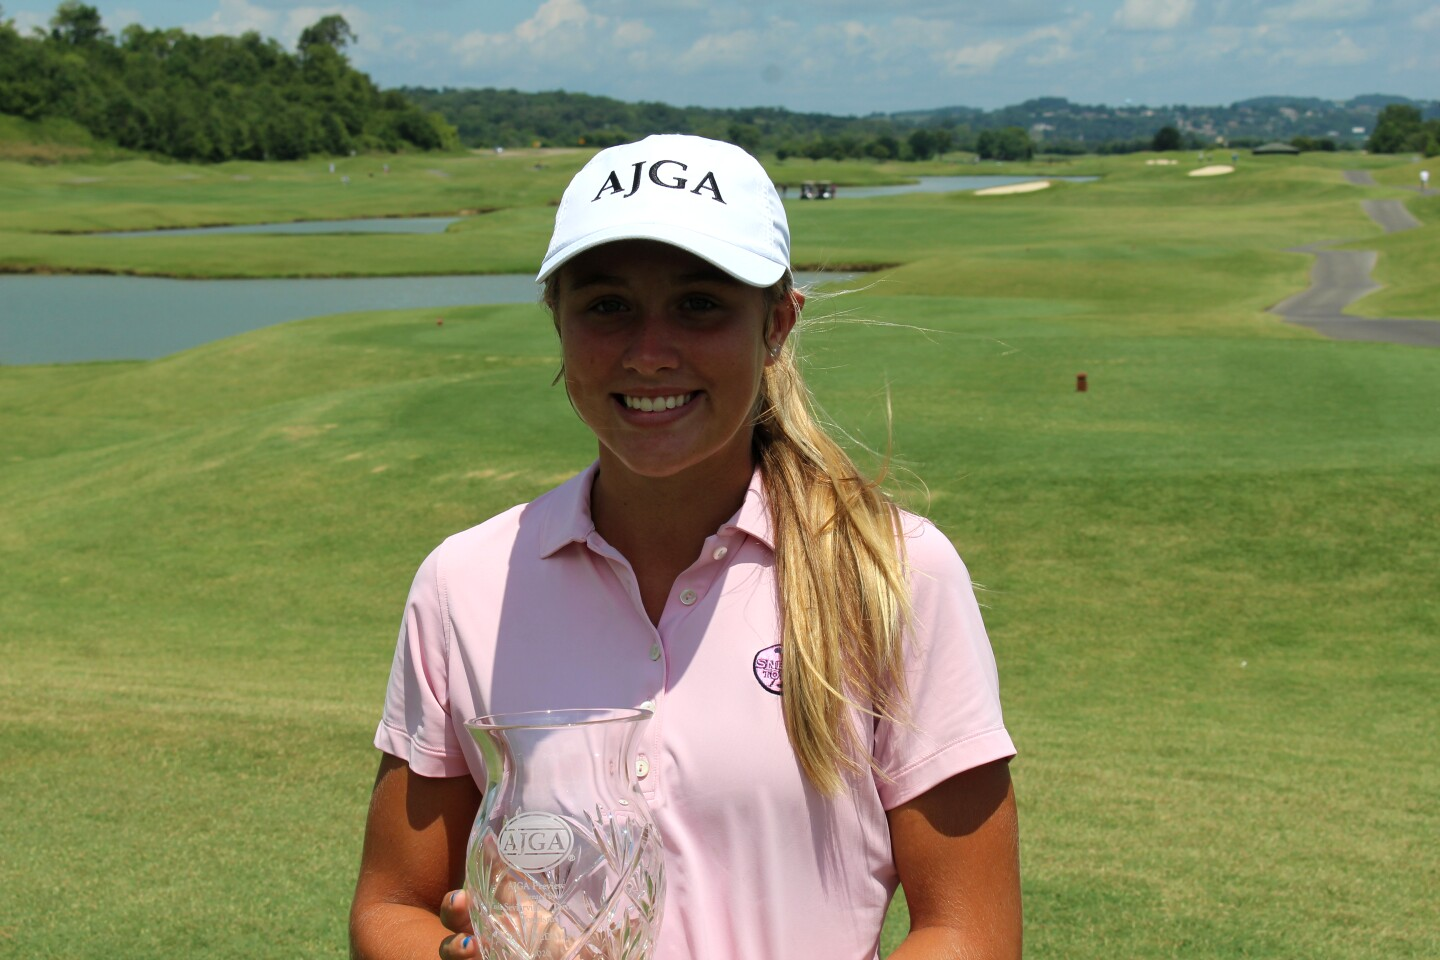 Karson Adkins individual trophy outside - 2020 - AJGA Preview presented by Visit Sevierville and Tennessee Tourism,.JPG